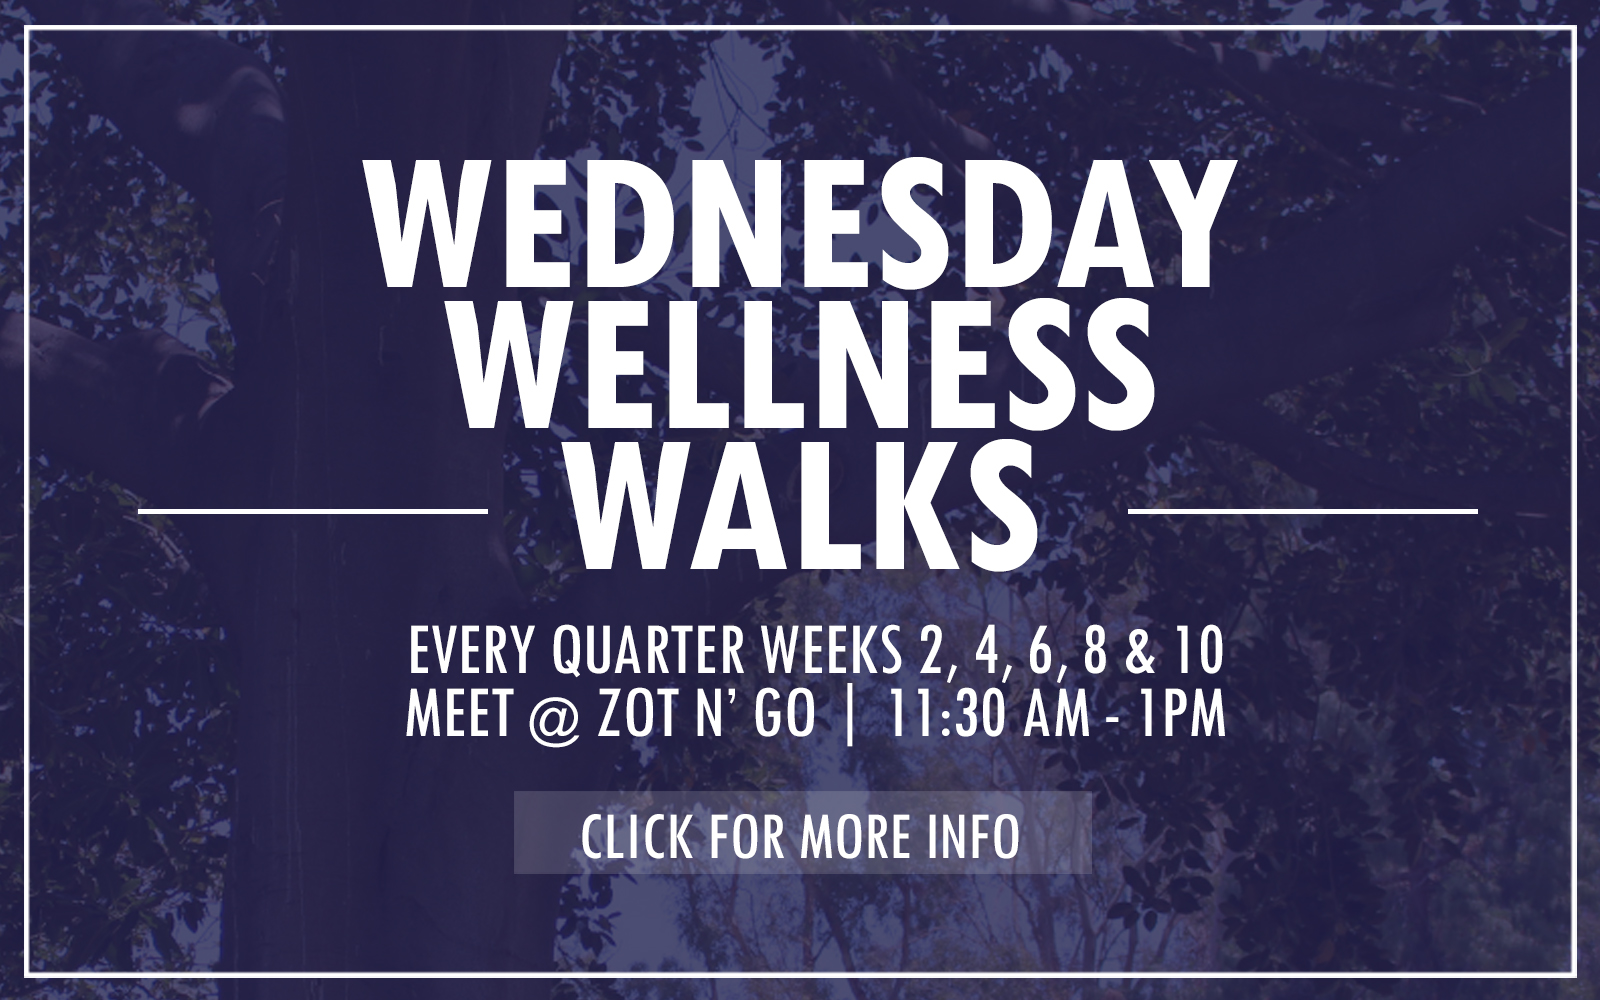 Wednesday Wellness Walks